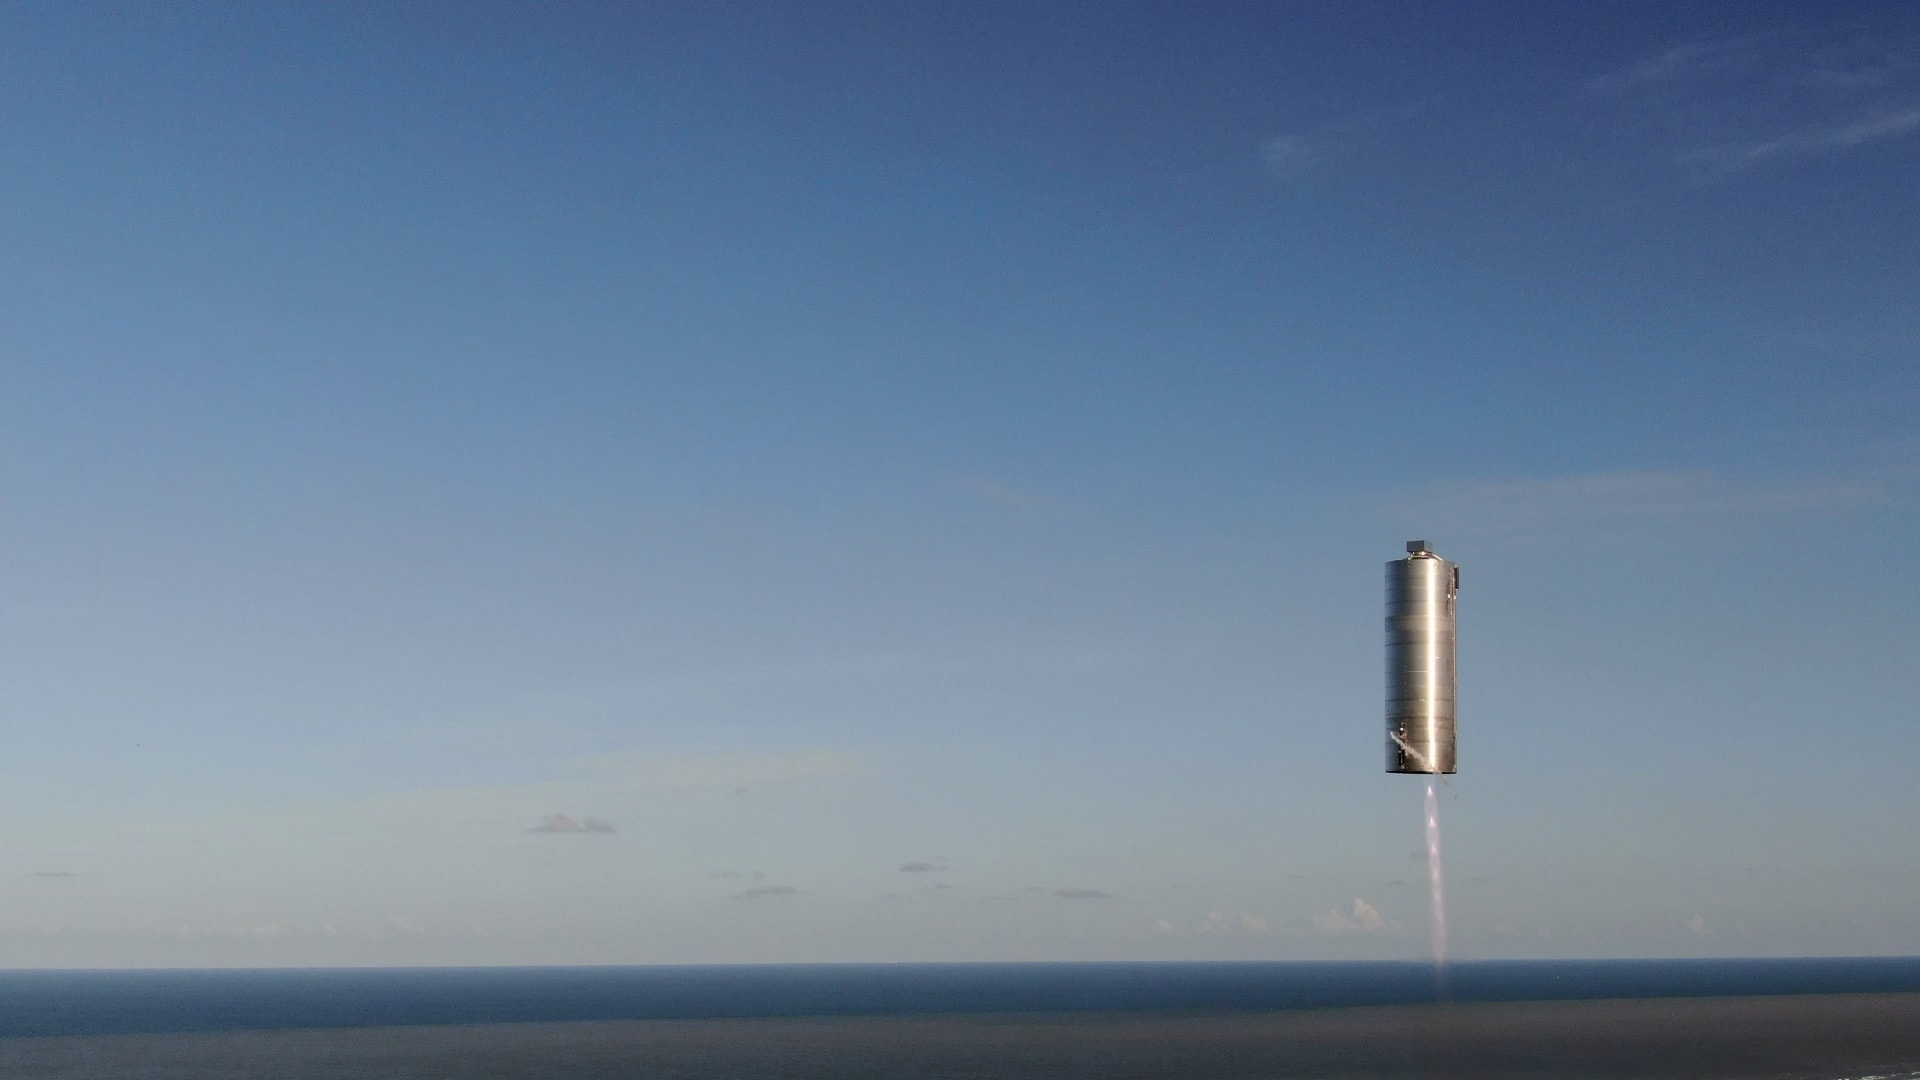 photo spacex starship sn5 rocket flying against blue sky